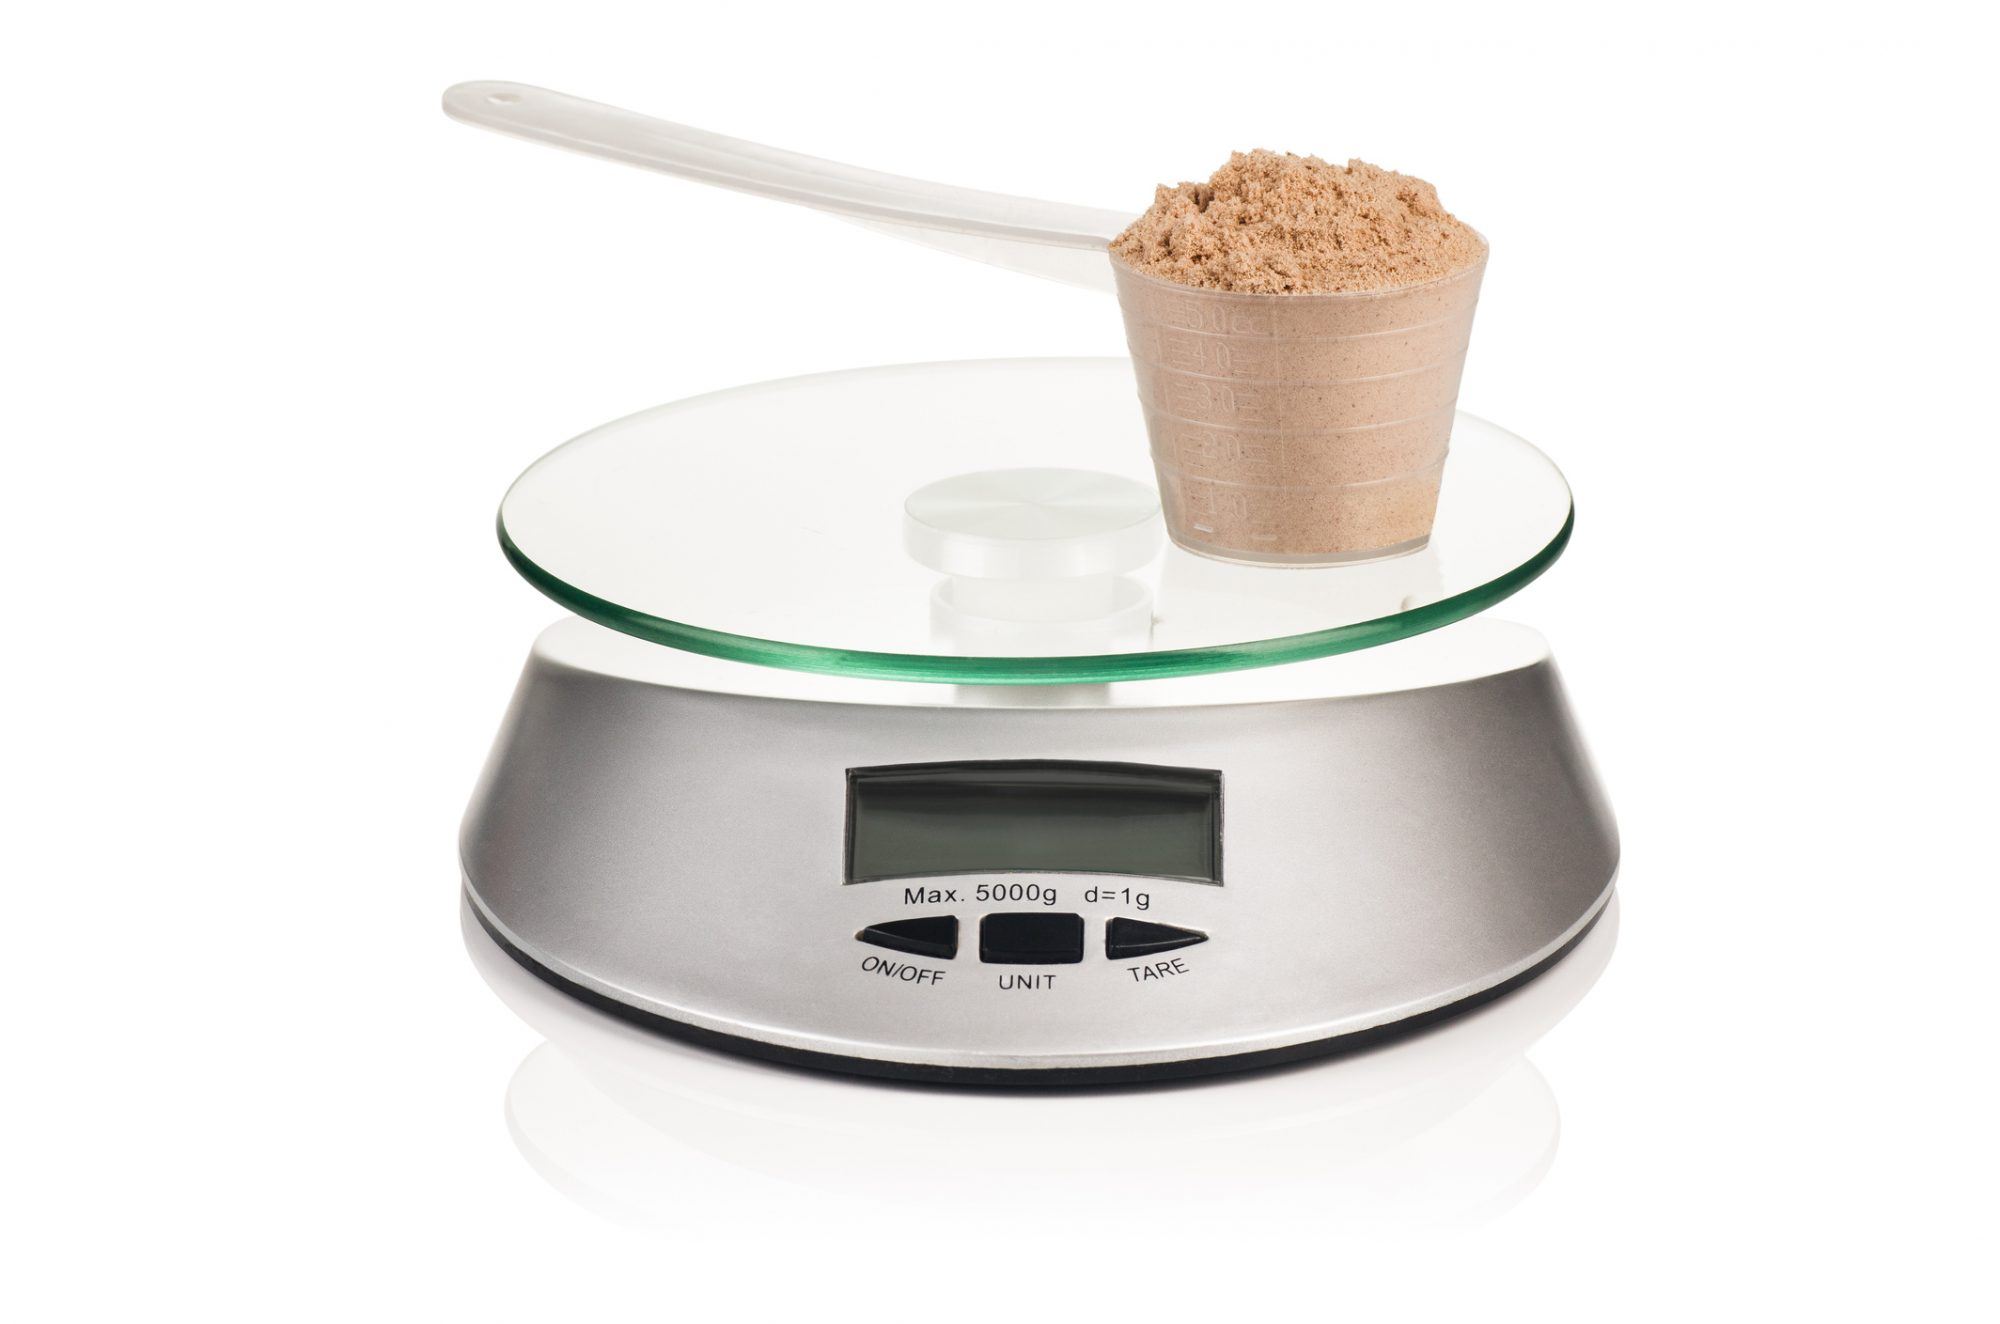 5 Surprising Reasons You Need a Digital Kitchen Scale